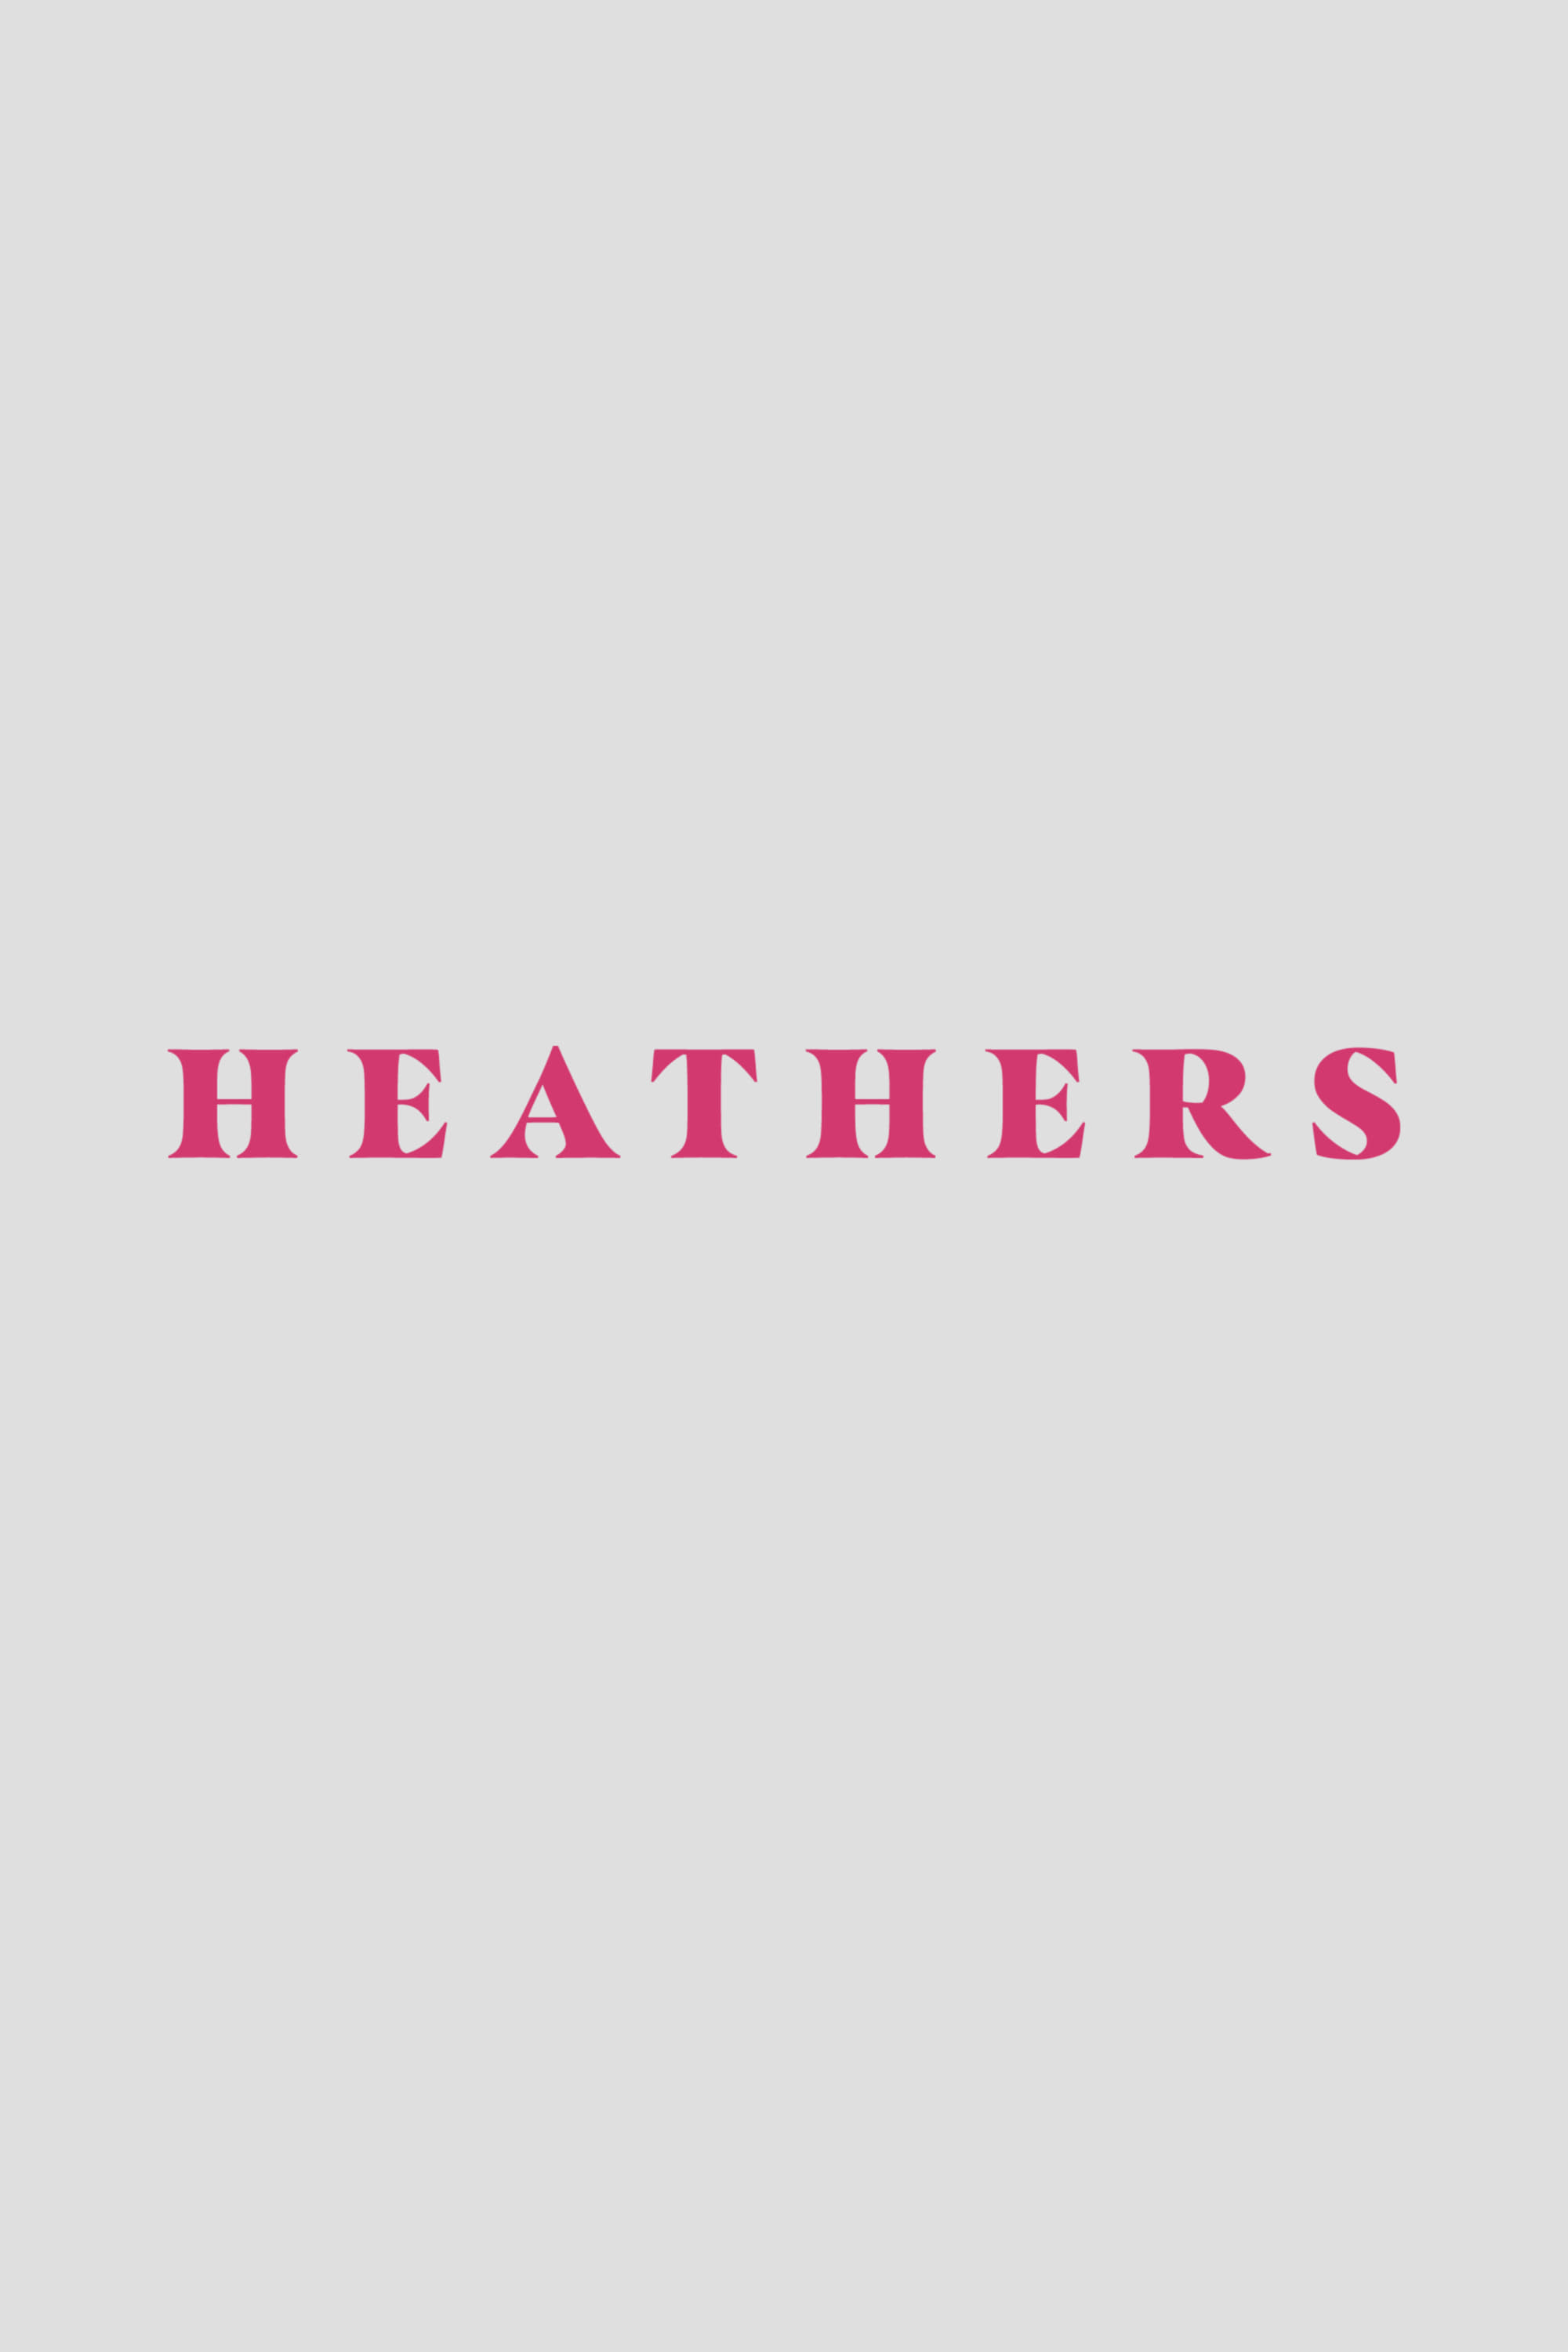 Heathers (TV Series 2018- ) - Posters — The Movie Database